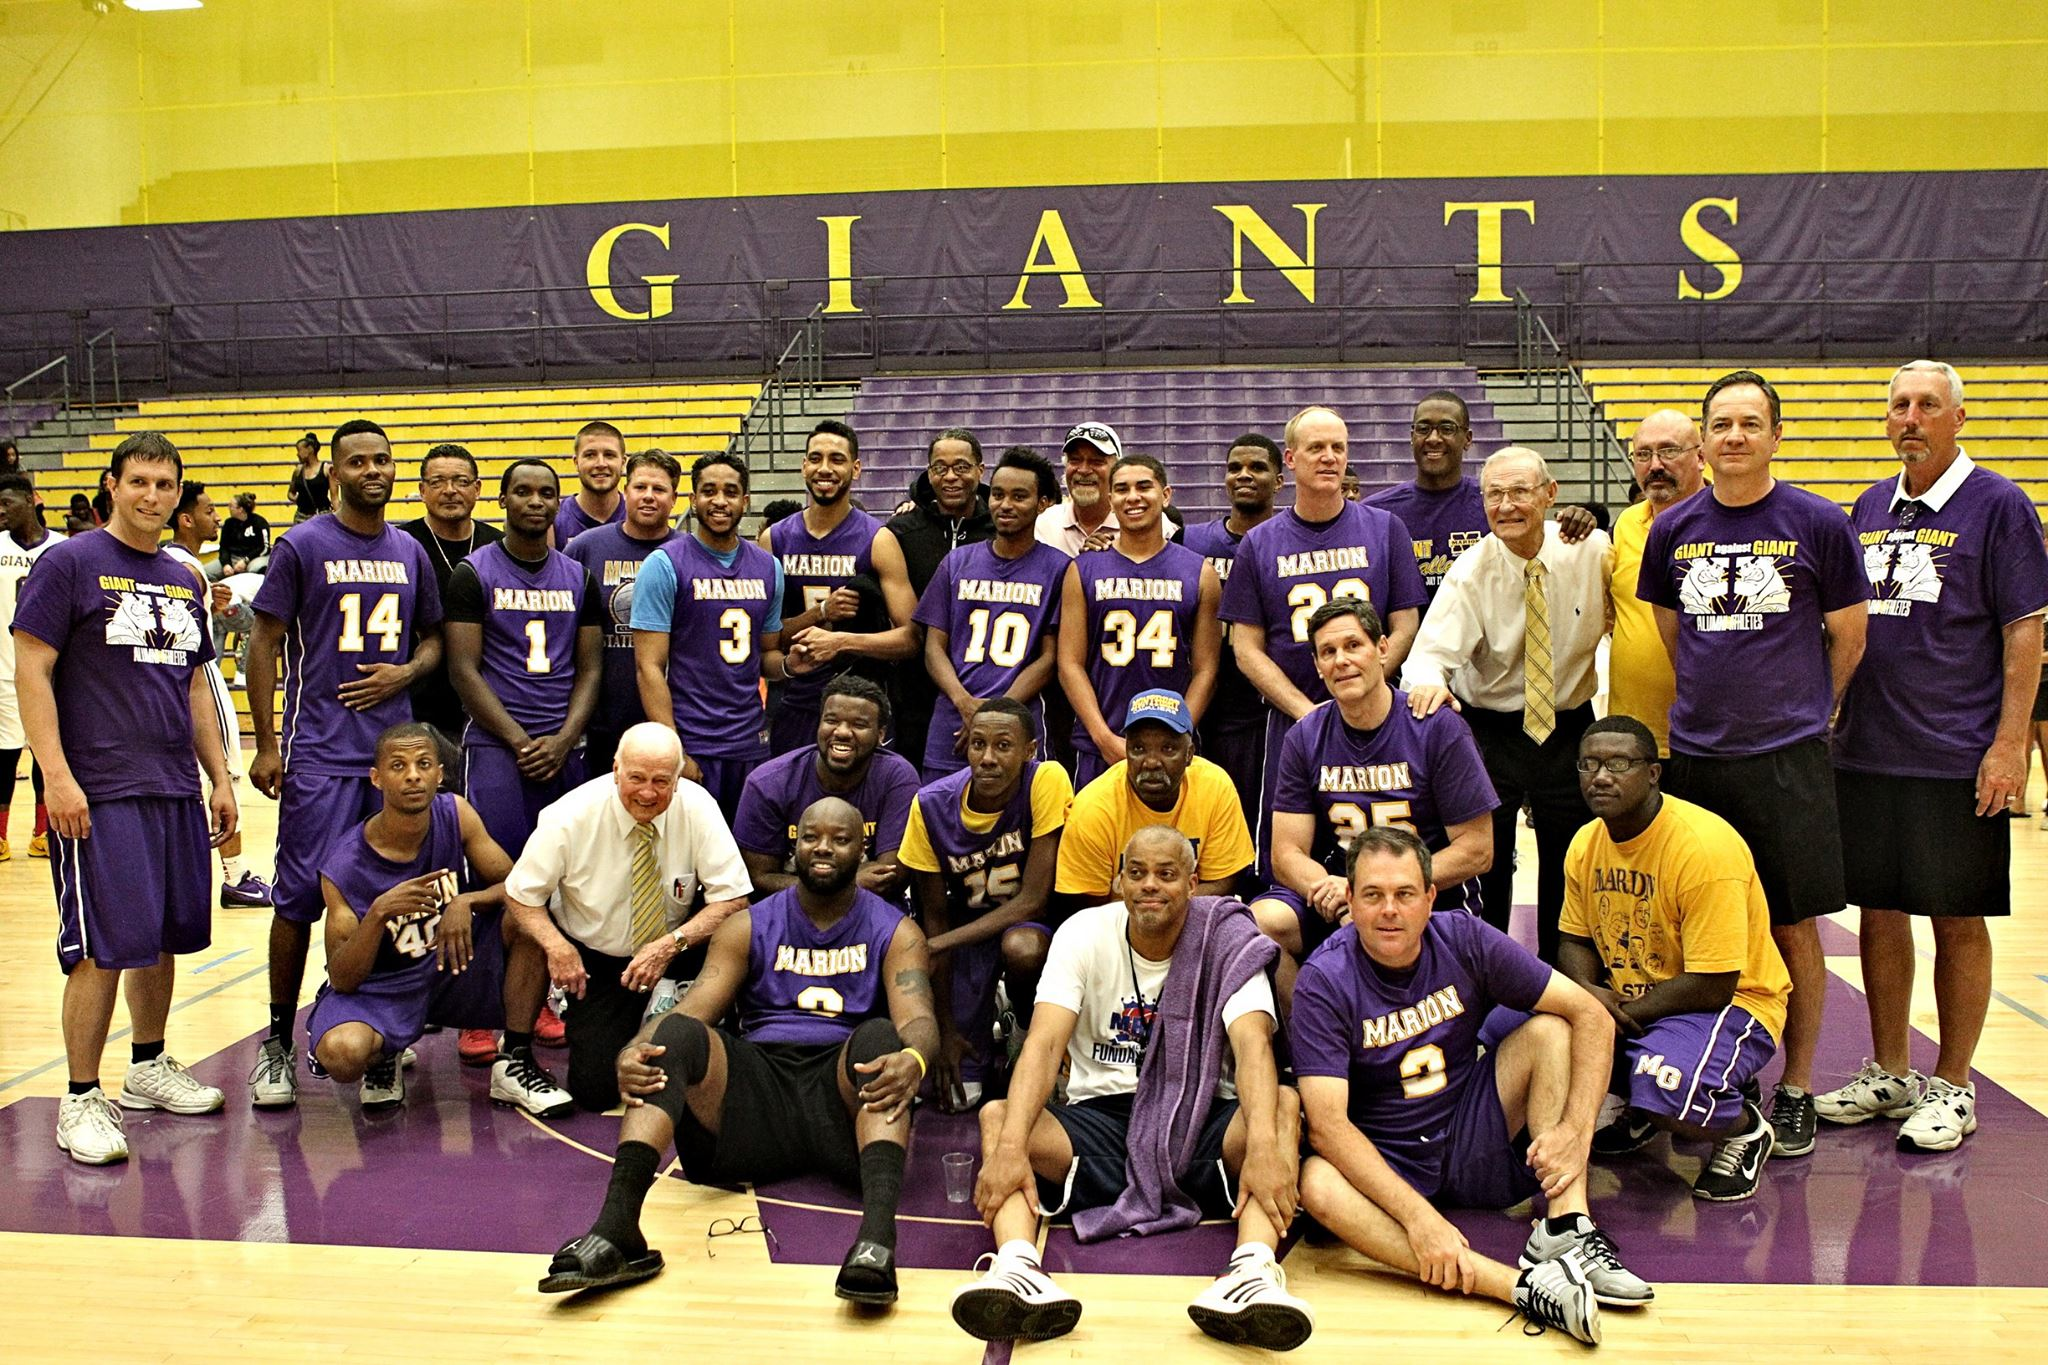 Giant Challenge 2015 boys basketball alumni teams